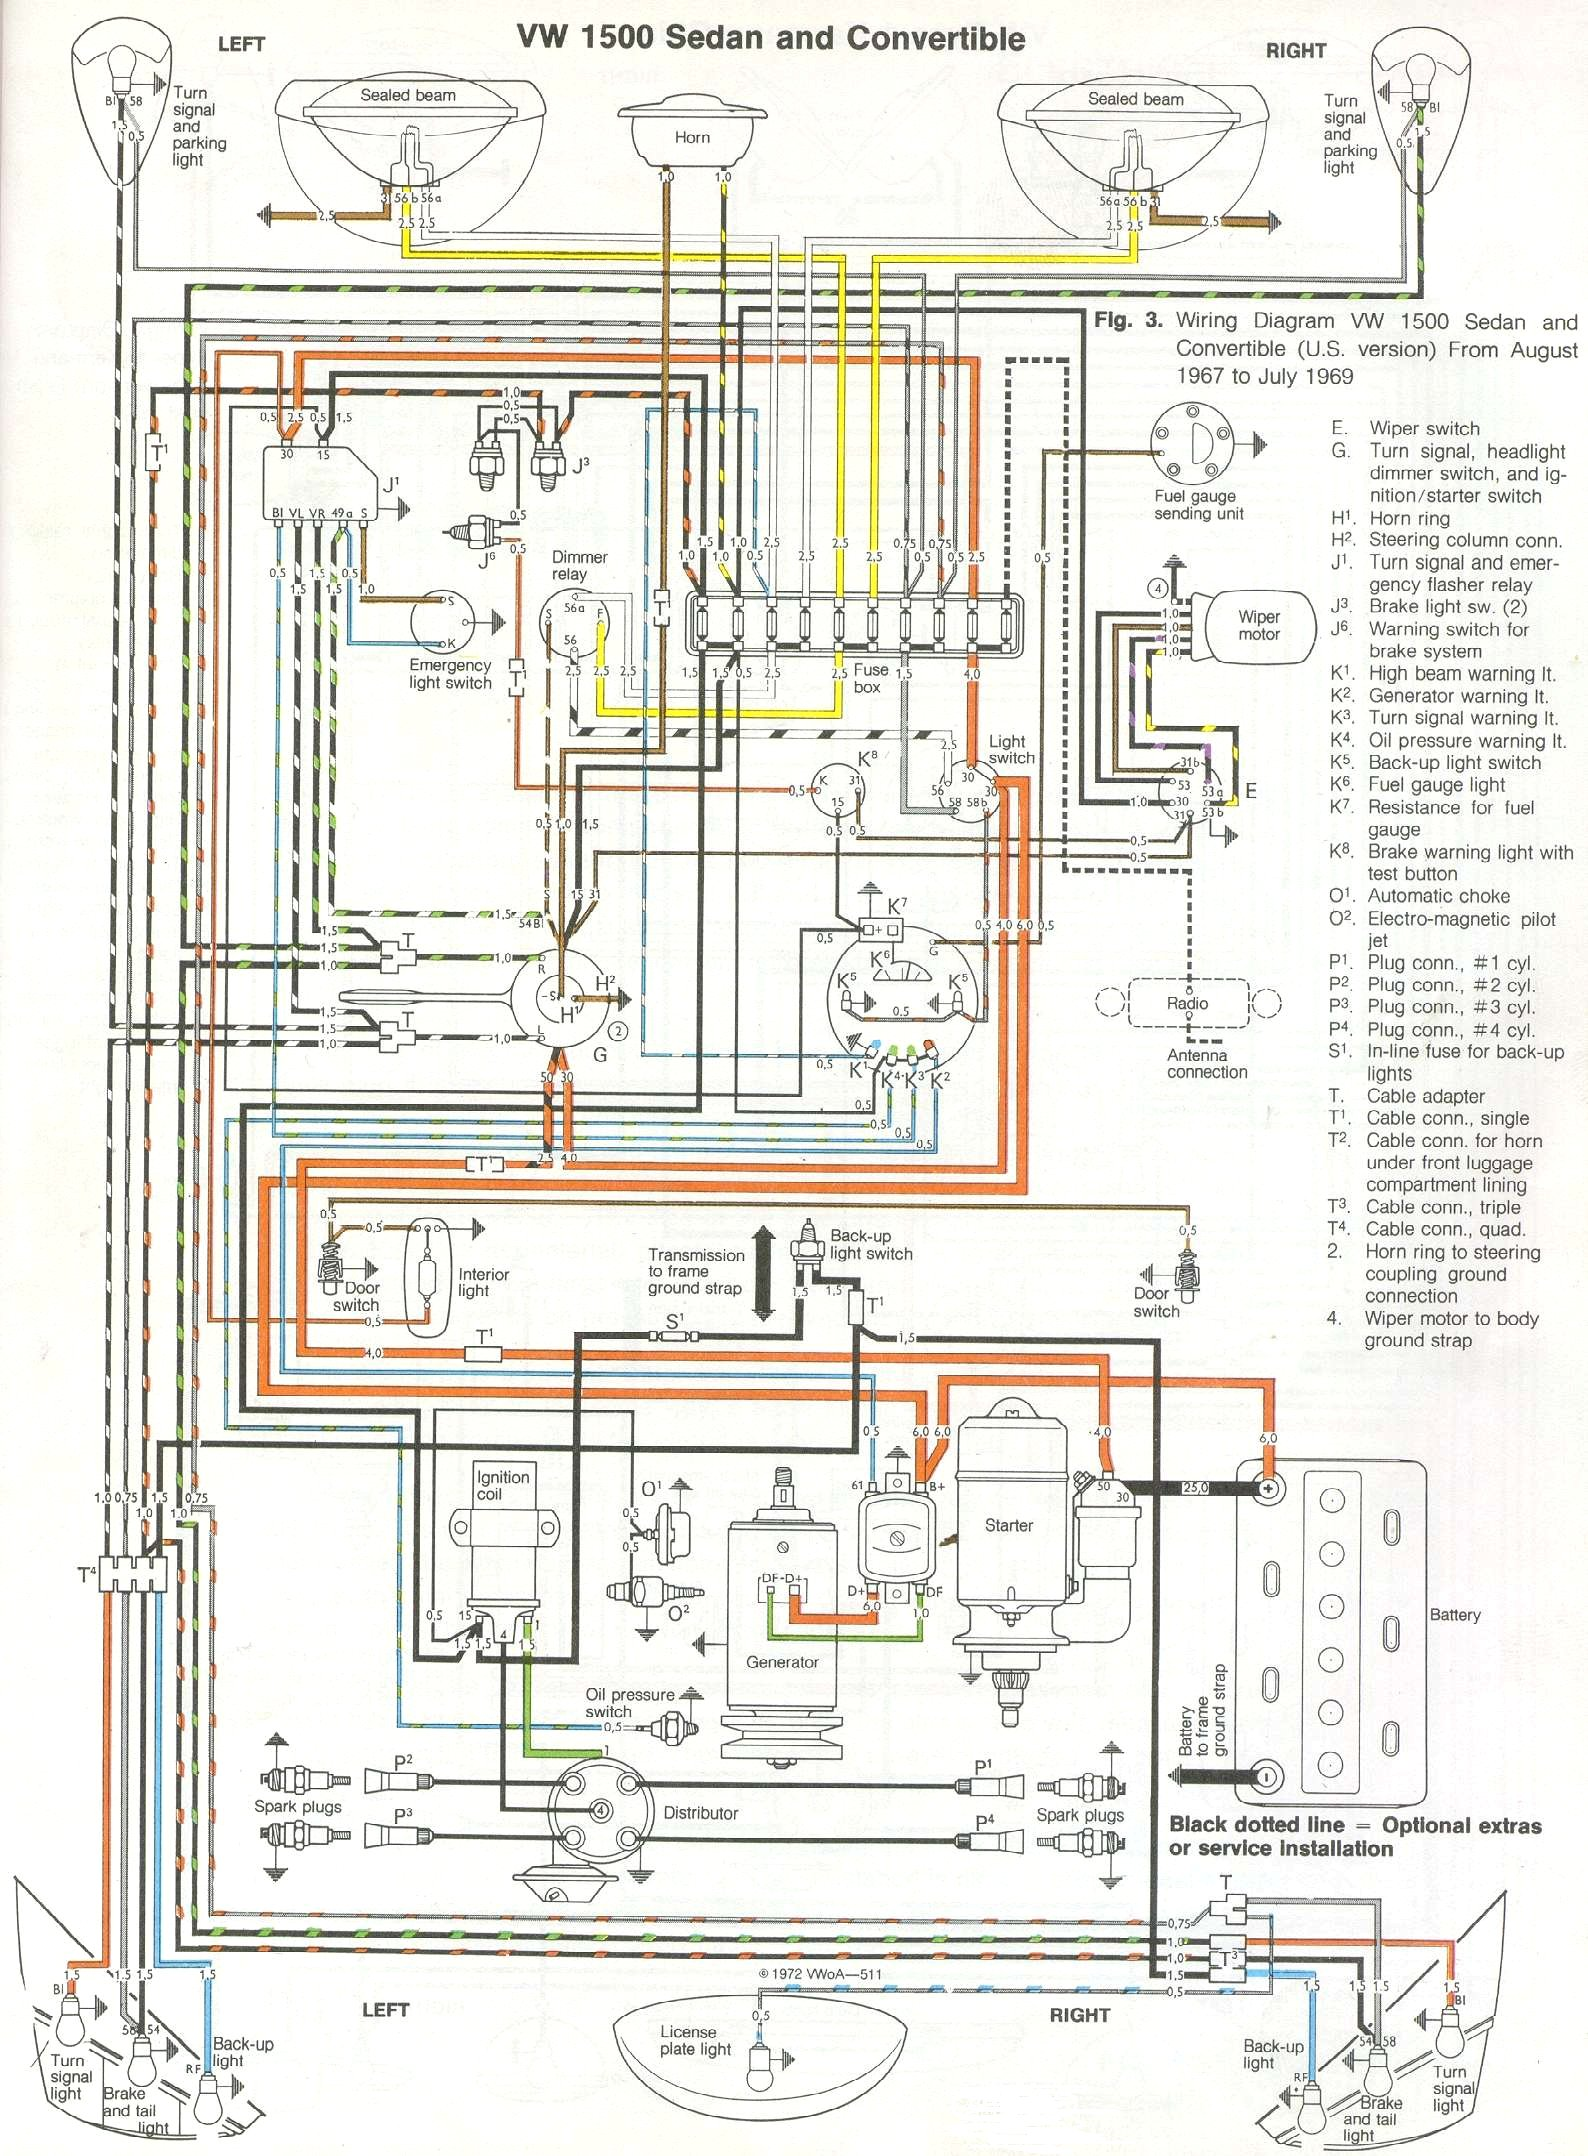 vw wiring diagrams 99 wiring diagram for you • new beetle wiring schematics wiring library rh 94 muehlwald de vw beetle wiring diagram 1970 vw